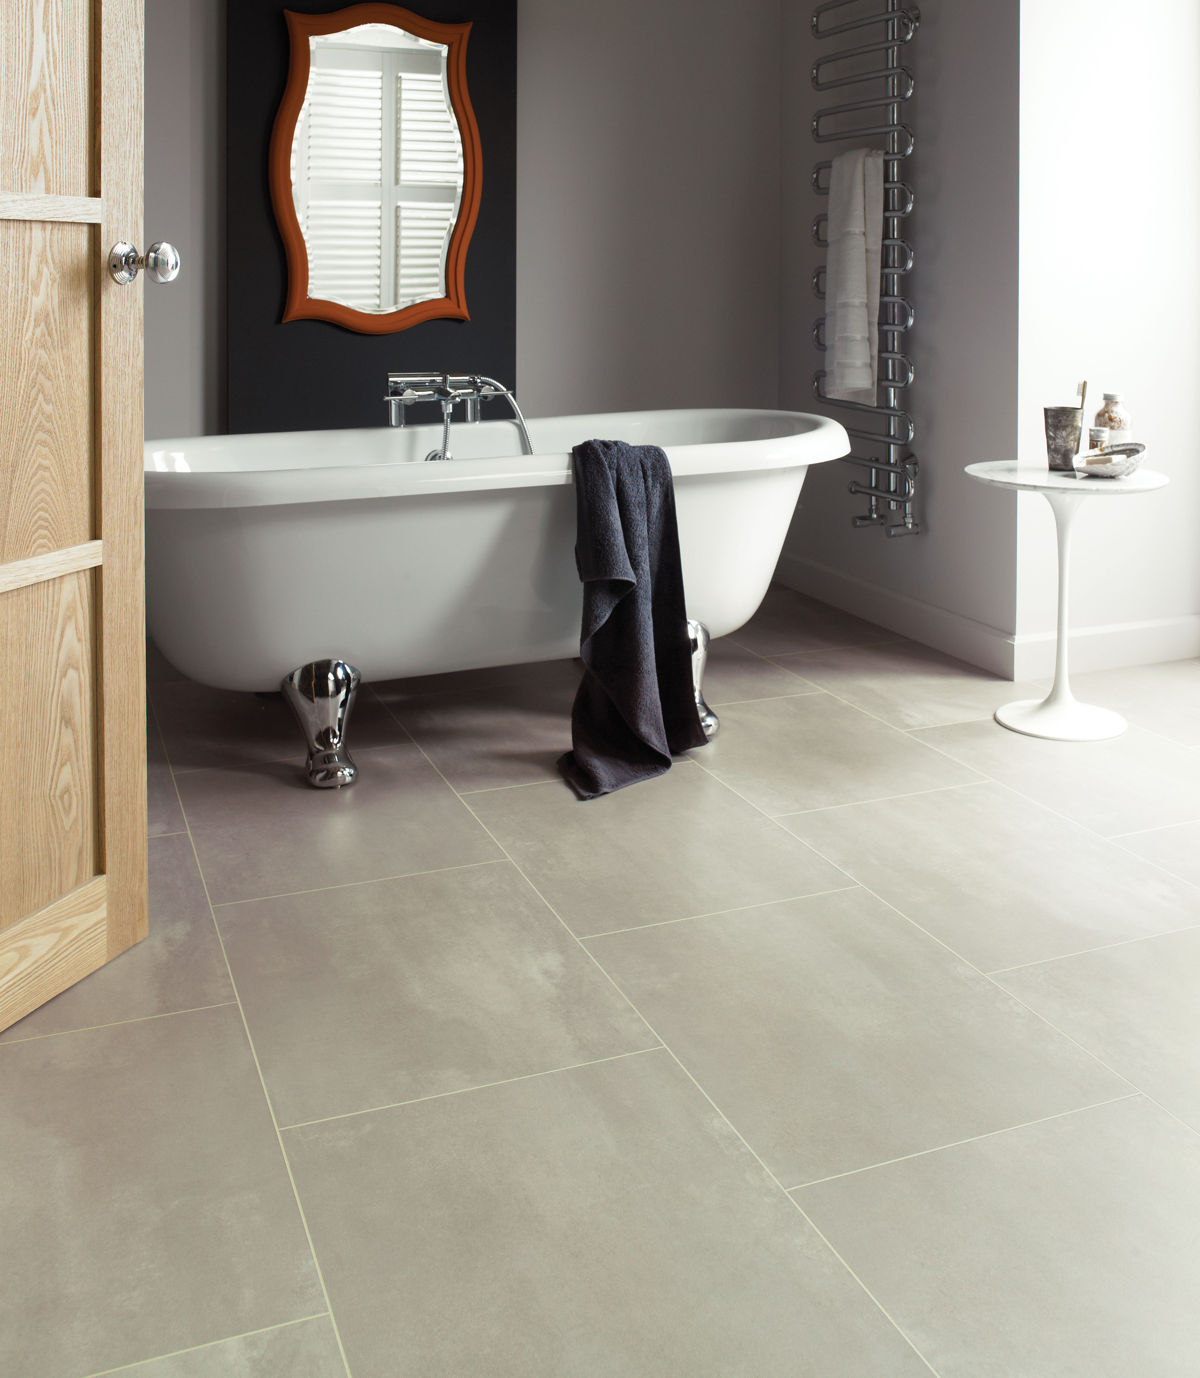 Laying Vinyl Tiles In Bathroom: Karndean Opus Mico SP211 Vinyl Flooring